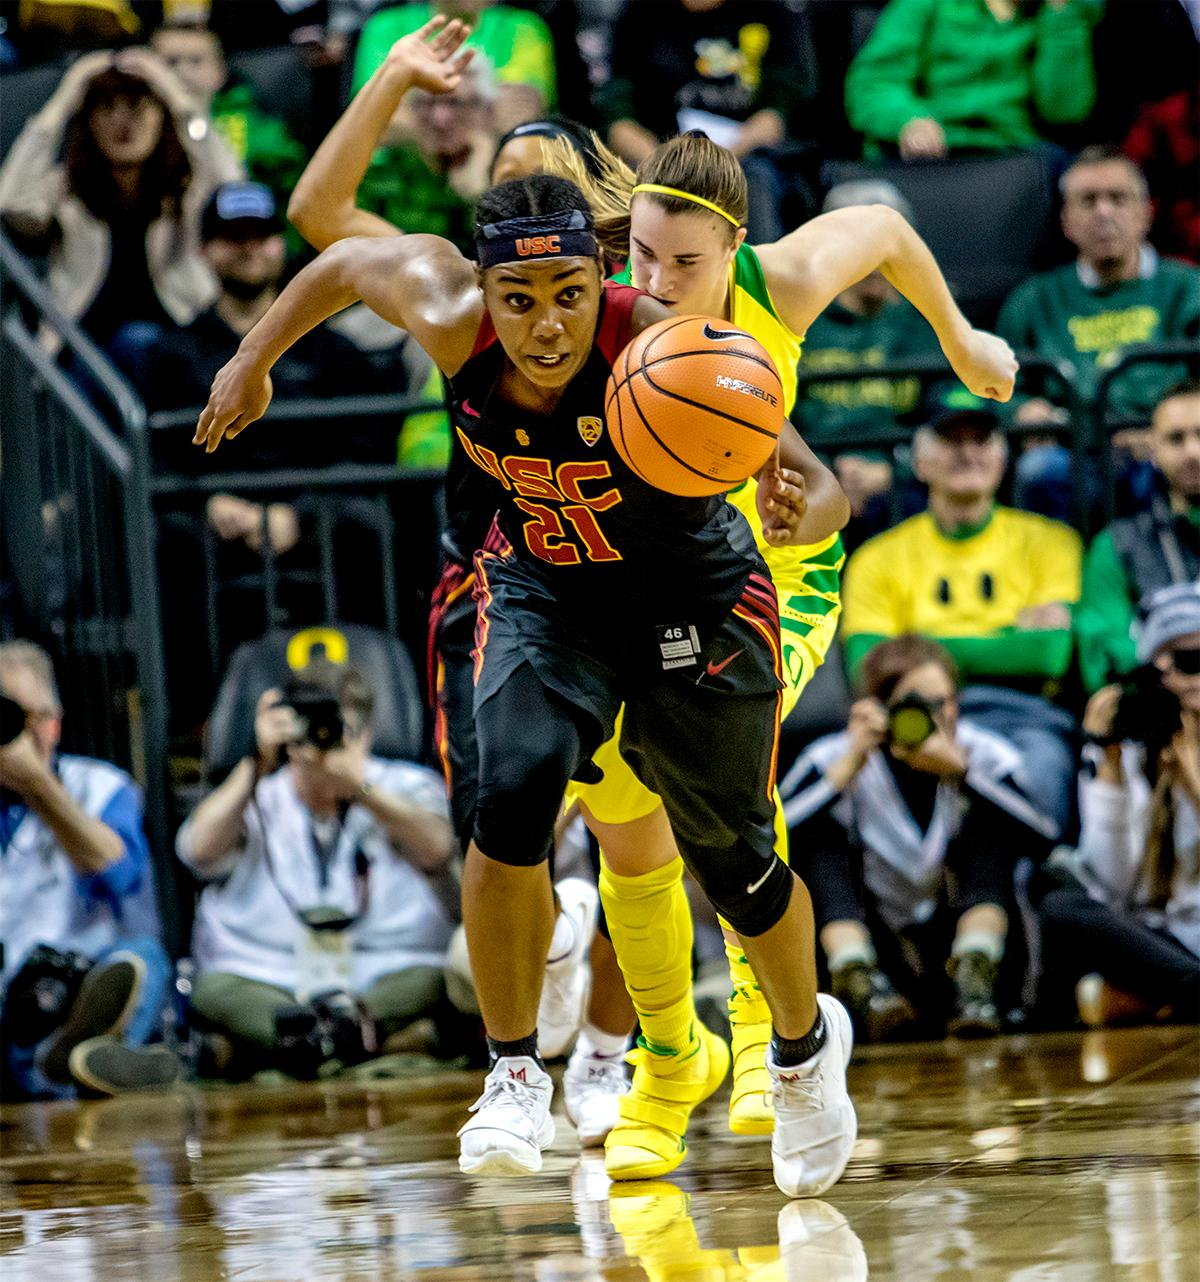 The Trojan's Aliya Mazyck (#21) runs the ball down the court after a steal. The Oregon Ducks defeated the USC Trojans 80-74 on Friday at Matthew Knight Arena in a  game that went into double overtime. Lexi Bando sealed the Ducks victory by scoring a three-pointer in the closing of the game. Ruthy Hebard set a new NCAA record of 30 consecutive field goals, the old record being 28. Ruthy Hebard got a double-double with 27 points and 10 rebounds, Mallory McGwire also had 10 rebounds. The ducks had four players in double digits. The Ducks are now 24-4, 13-2 in the Pac-12, and are tied for first with Stanford. Photo by August Frank, Oregon News Lab